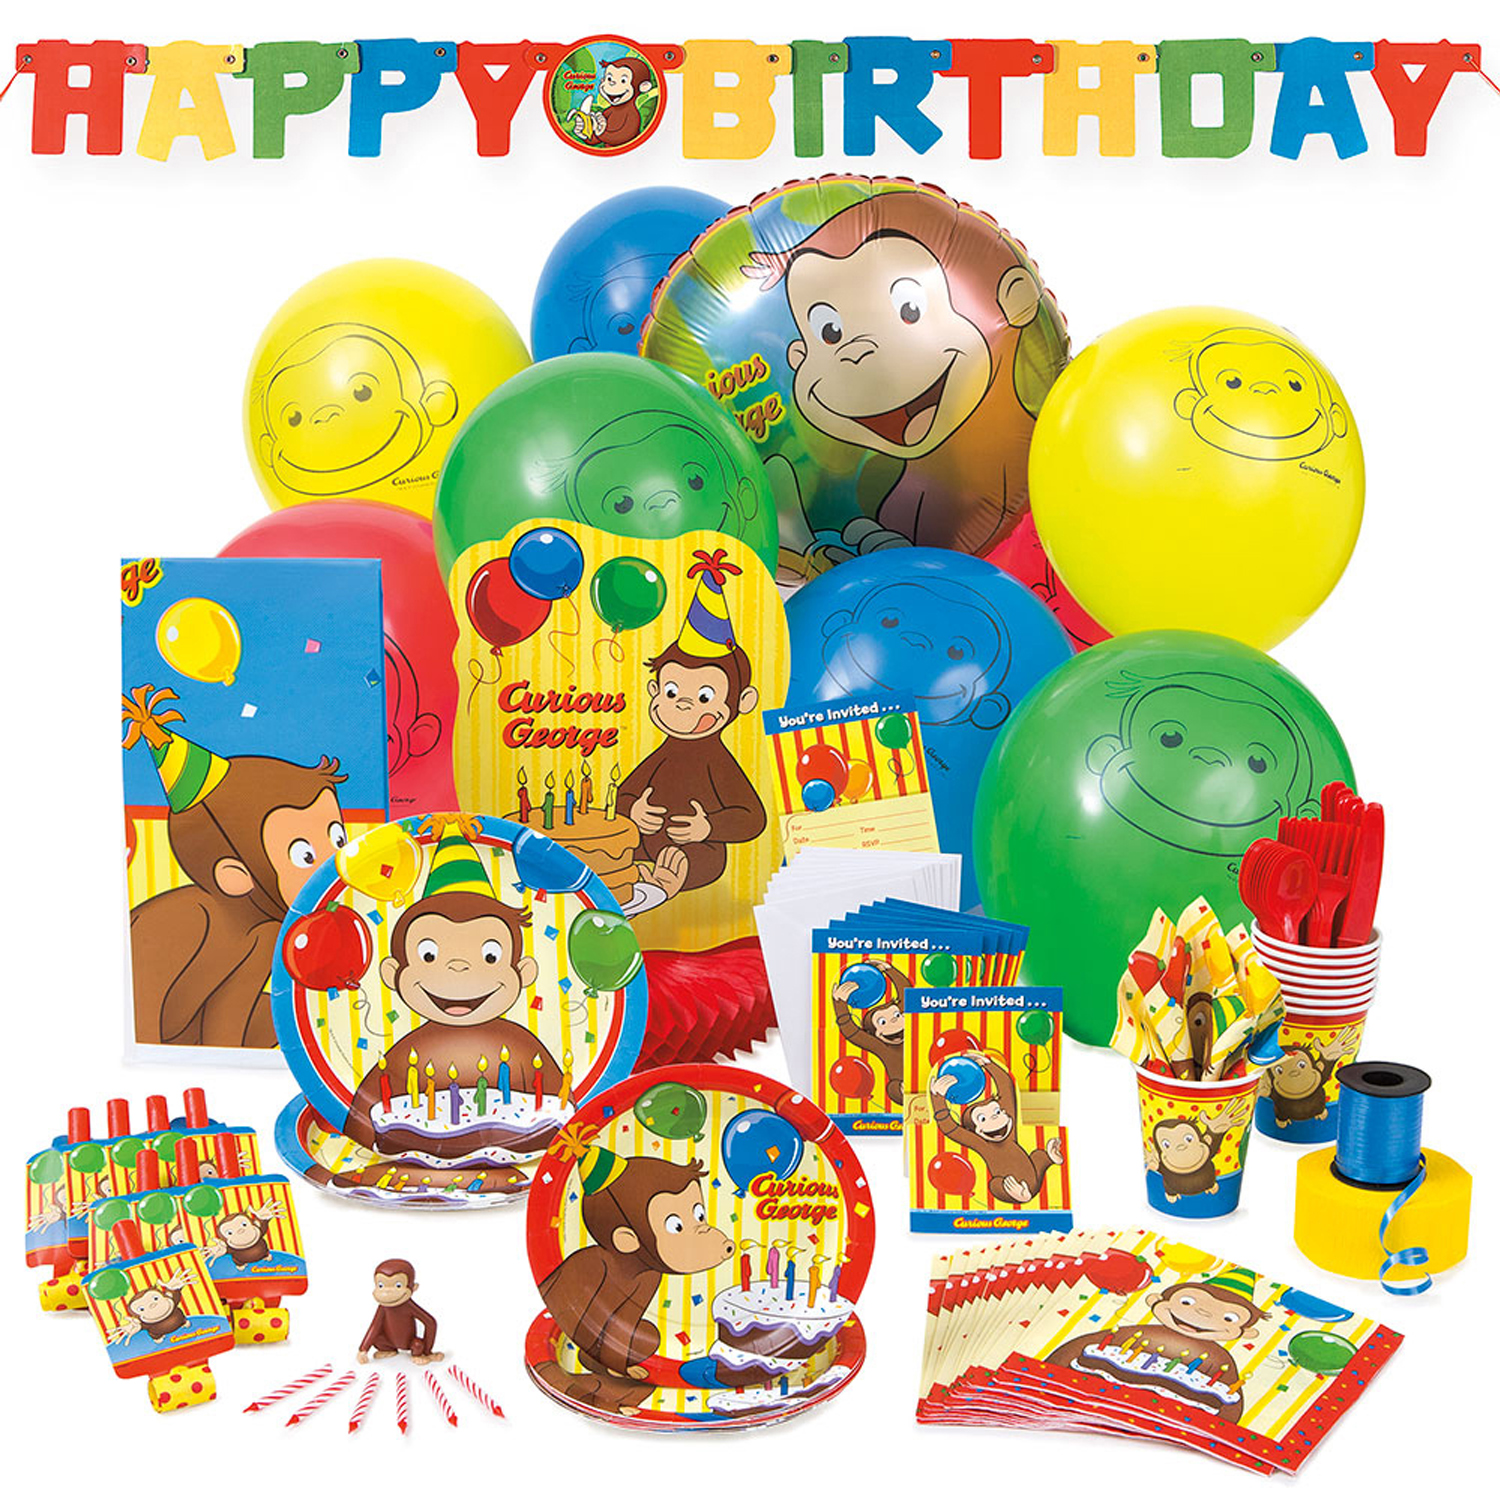 Remarkable Curious George Cake Topper Birthday Candles 7Pc Walmart Com Funny Birthday Cards Online Sheoxdamsfinfo